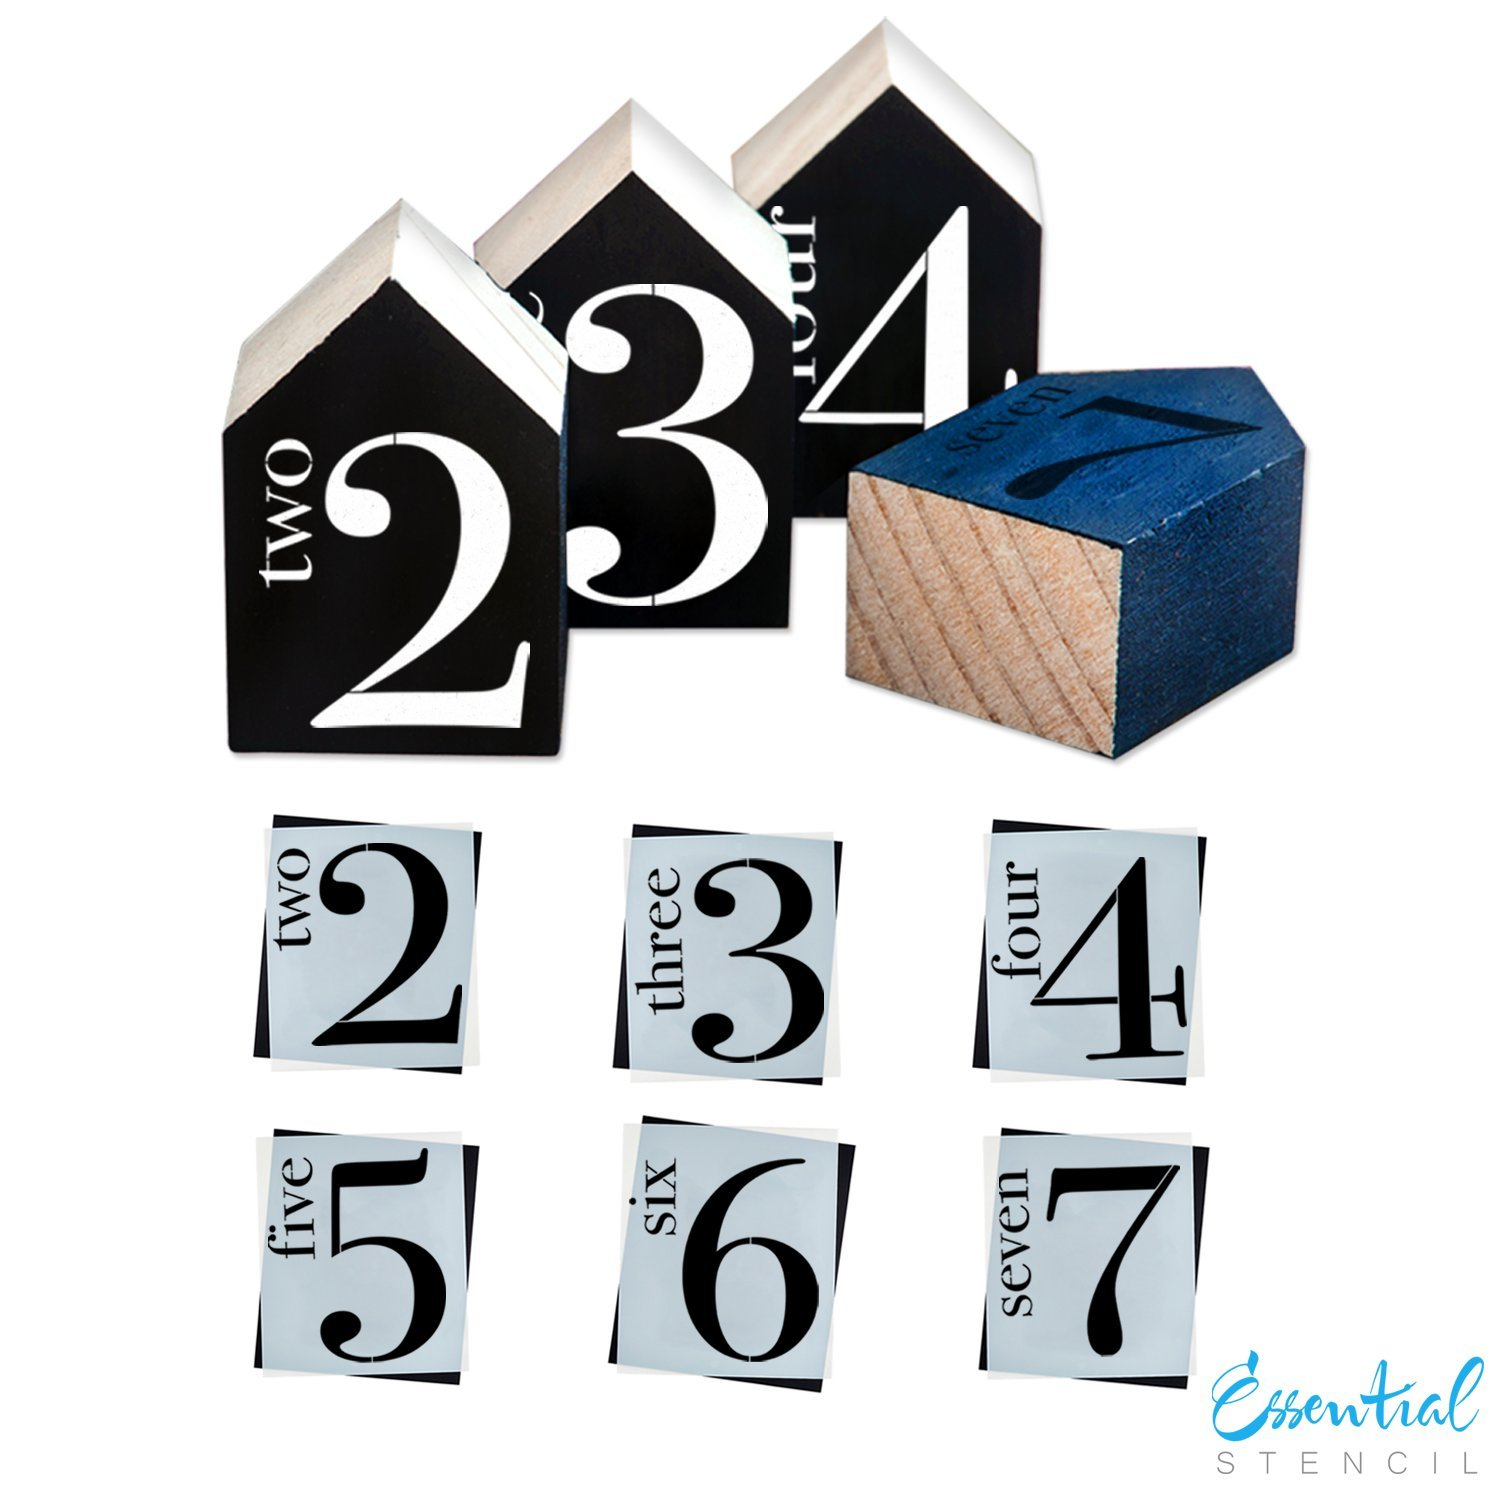 Family Numbers (6 Pack) Mini Signs Stencil Set | Perfect for Painting On Wood, DIY French Country Home Decor Calligraphy Signs, Rustic Decor for Farmhouse, Fixer Upper, Joanna Gaines, Magnolia Style Essential Stencil 4336893764